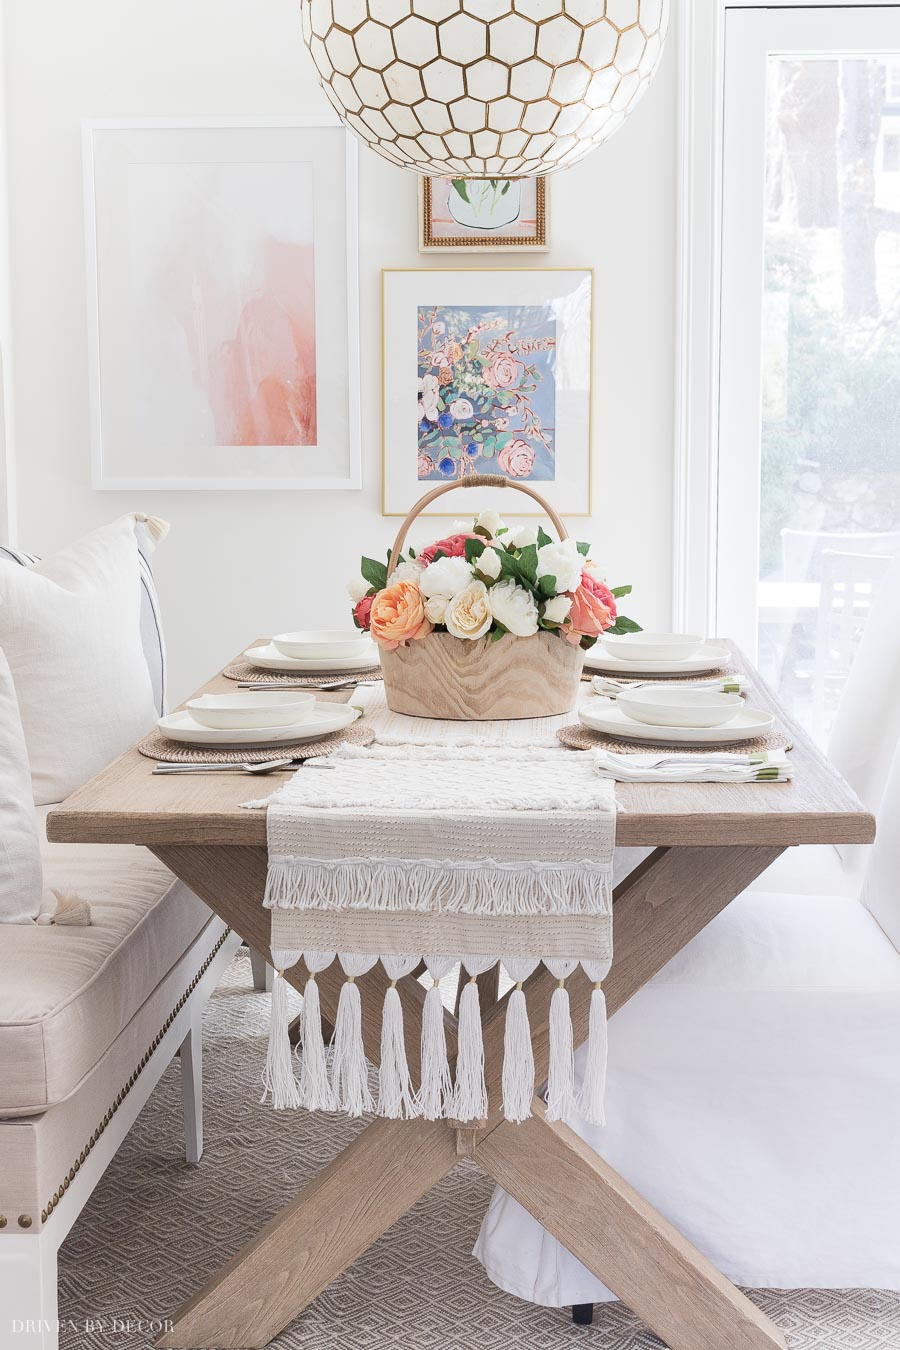 Have A Restoration Hardware Or Pottery Barn Wood Table With Most Recent Tuscan Chestnut Toscana Dining Tables (View 15 of 25)